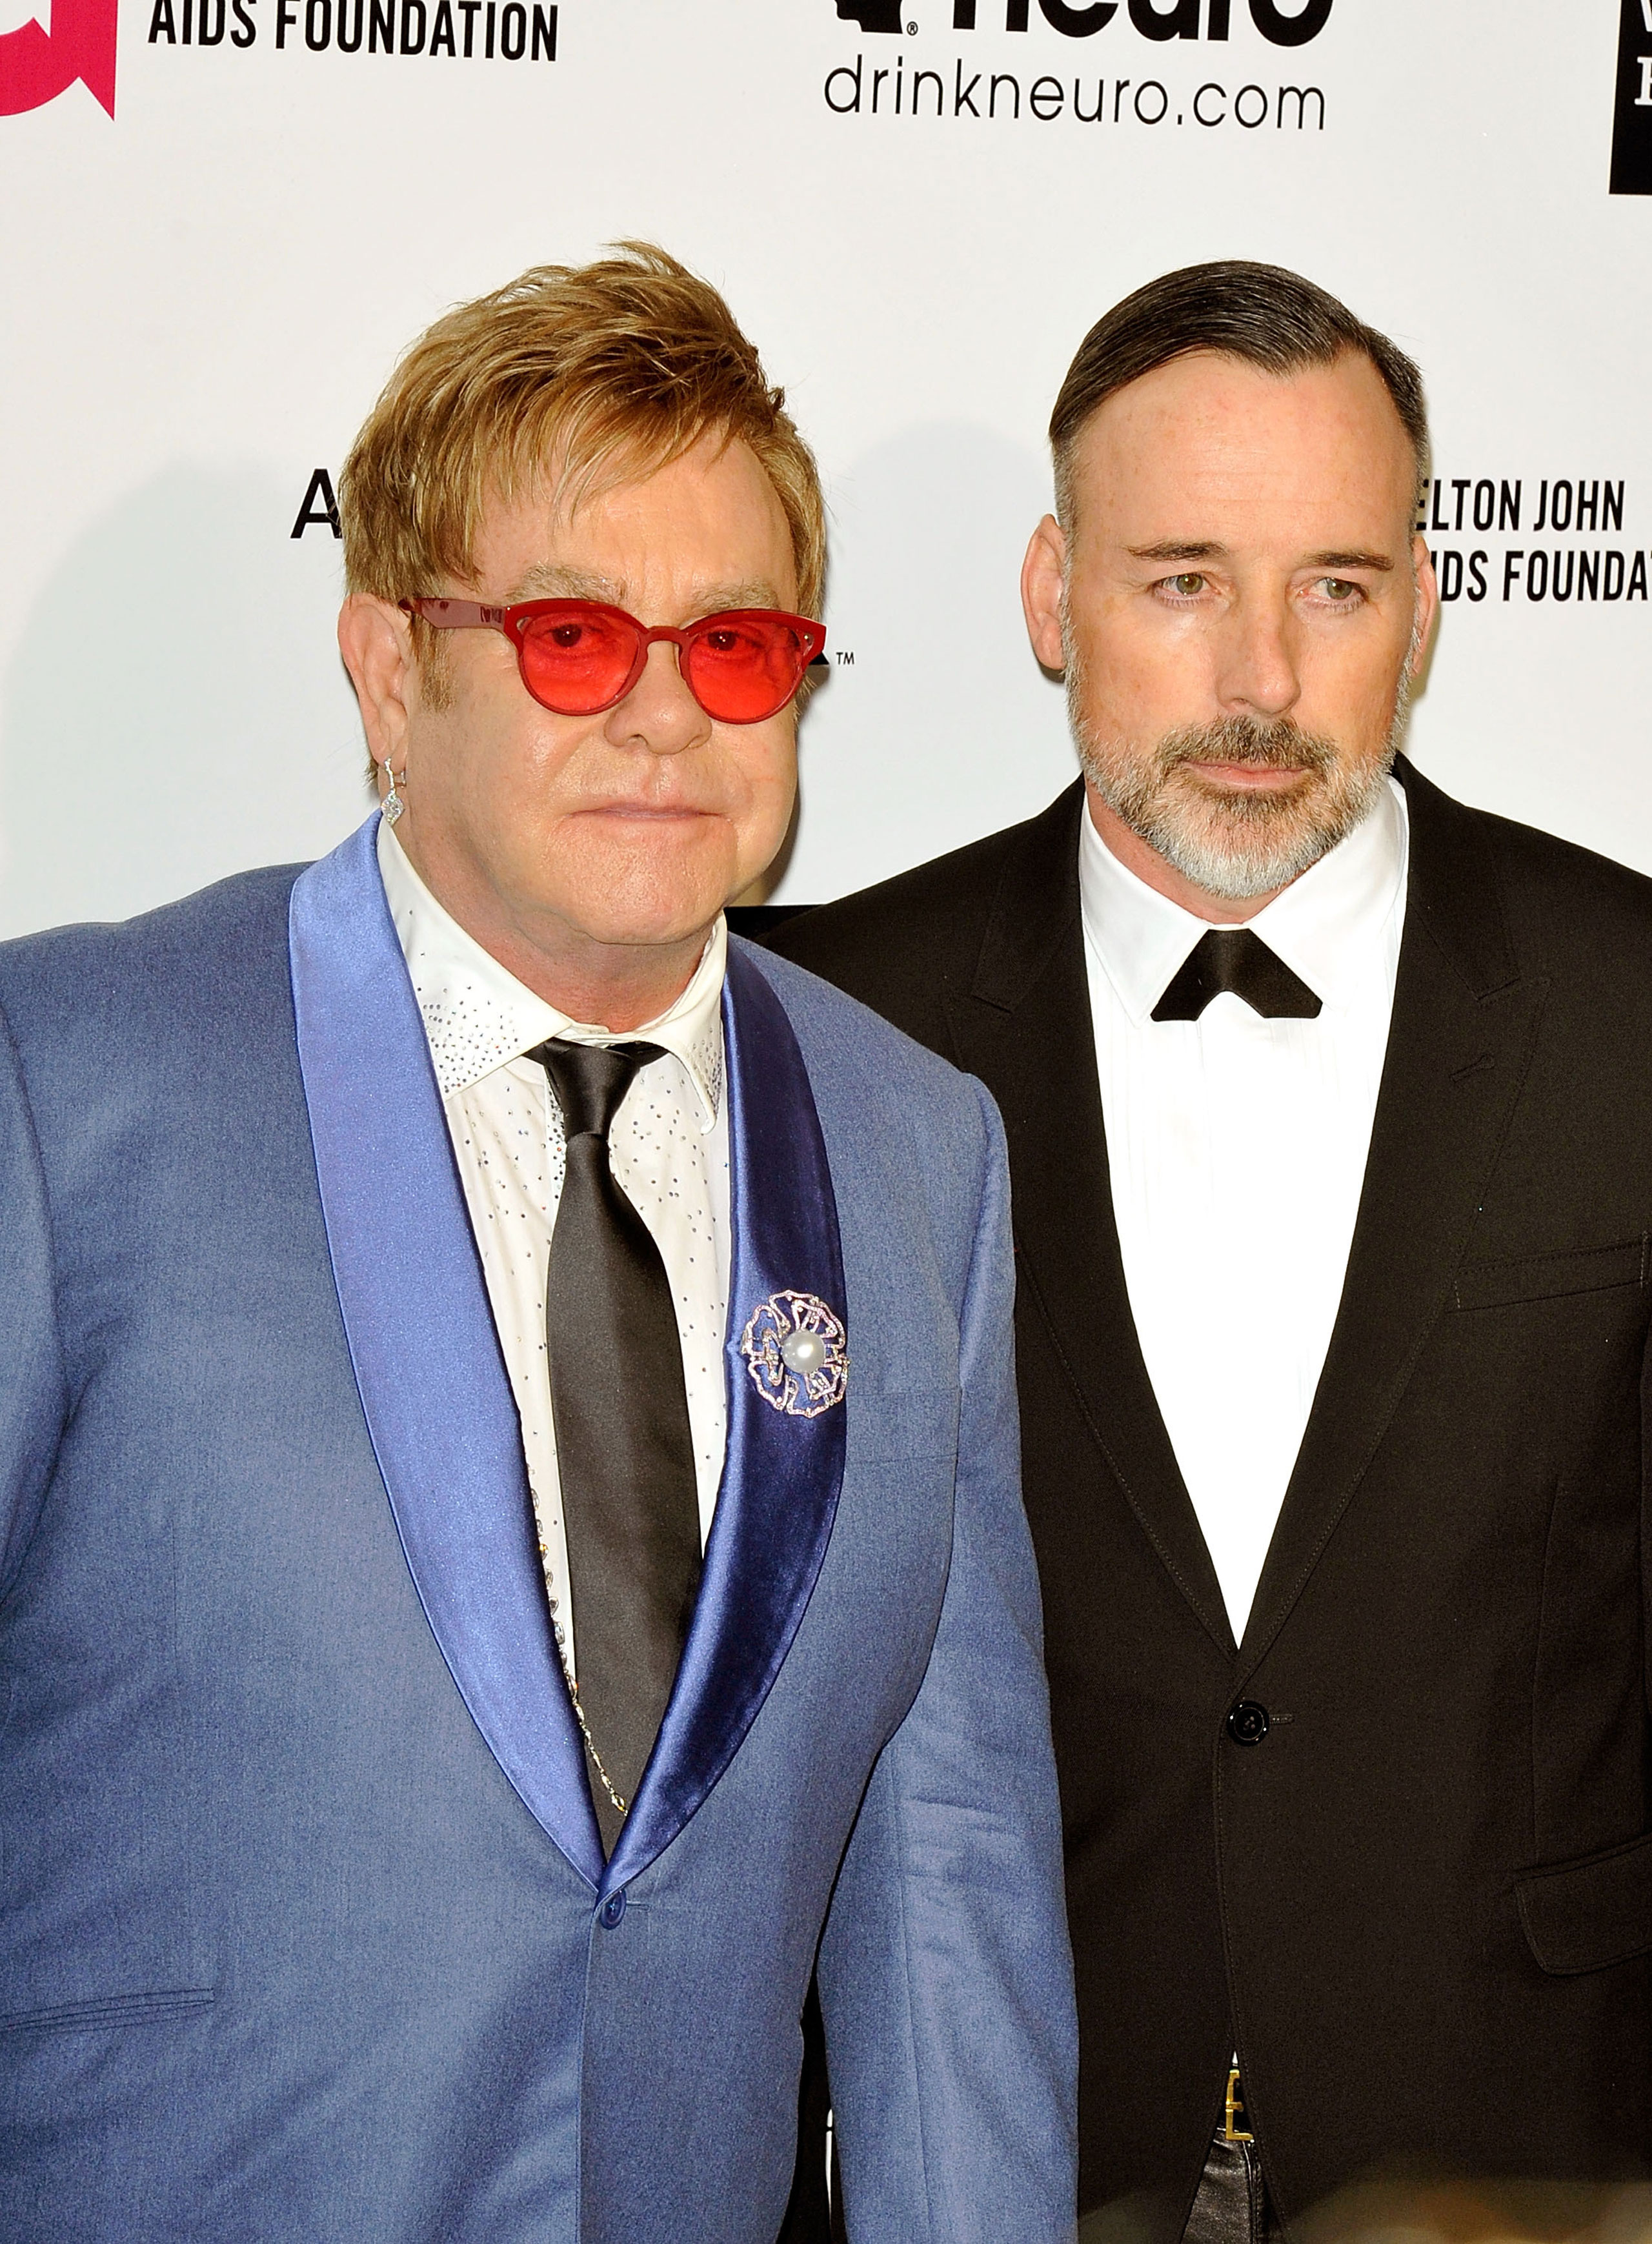 Elton John and David Furnish attend the 23rd Annual Elton John AIDS Foundation's Oscar Viewing Party on Feb. 22, 2015 in Los Angeles.